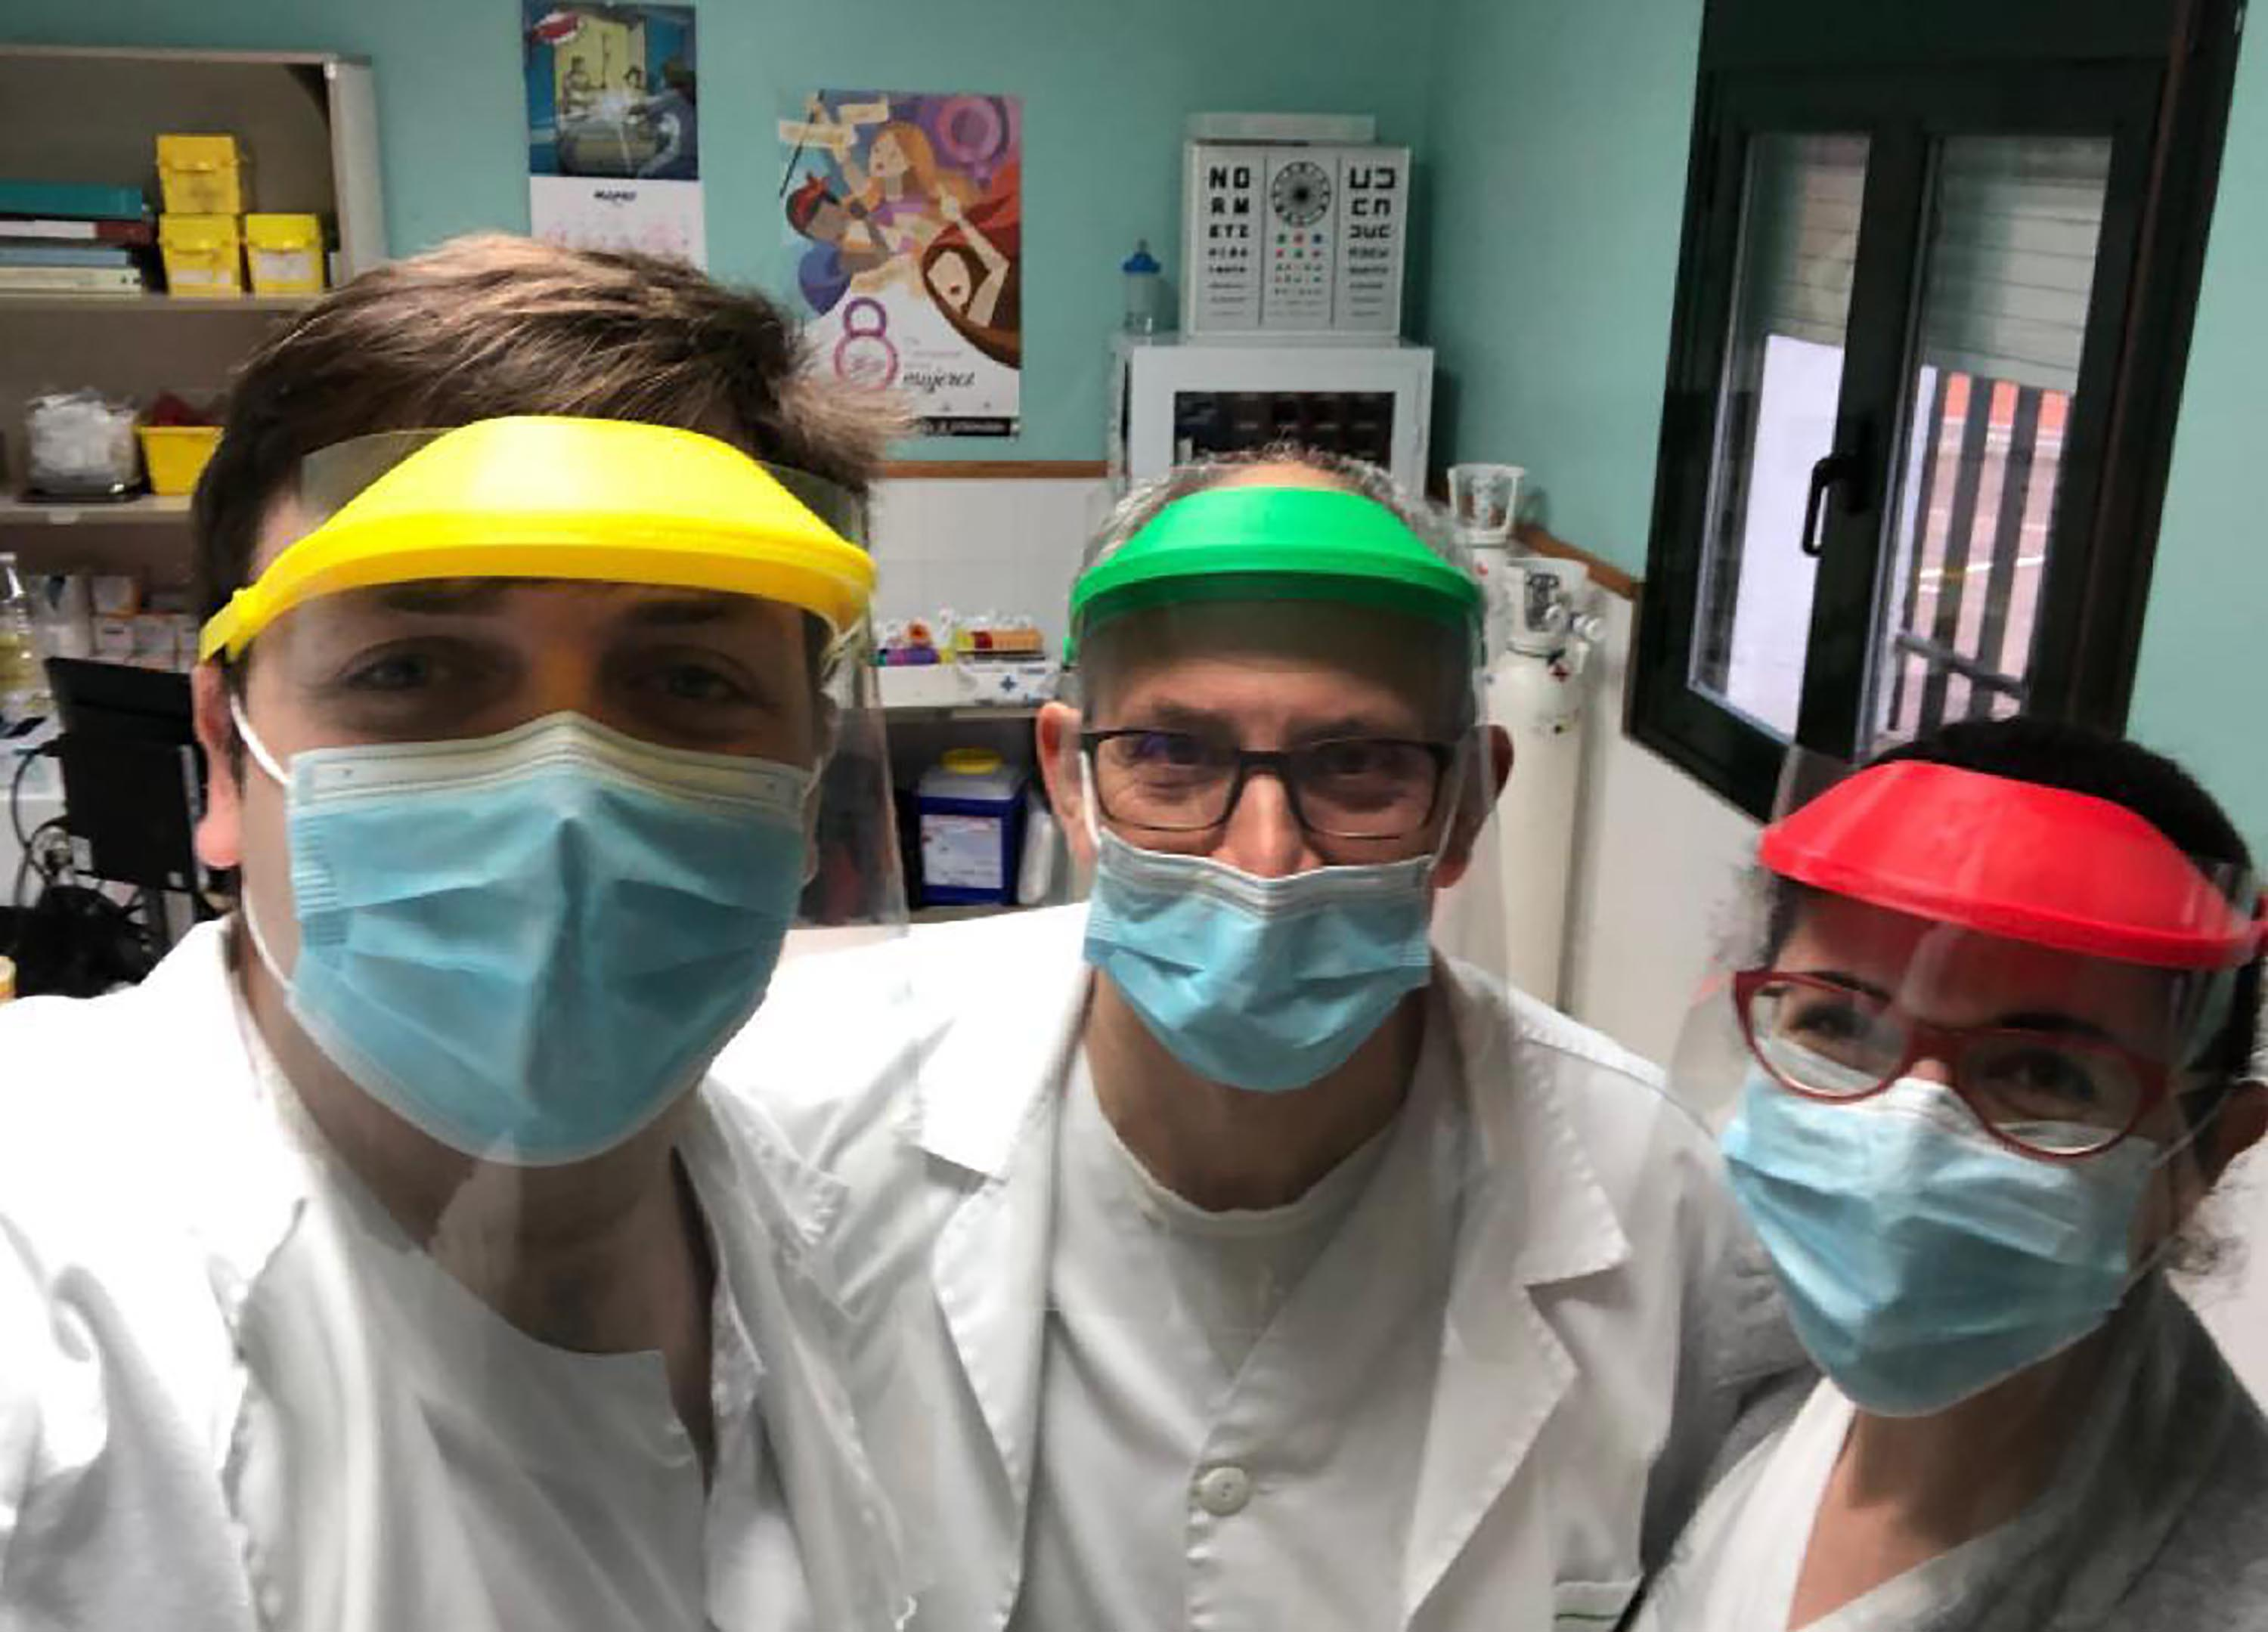 Dr Carlos Hernandez (left) with two colleagues at the Badajoz University Hospital.